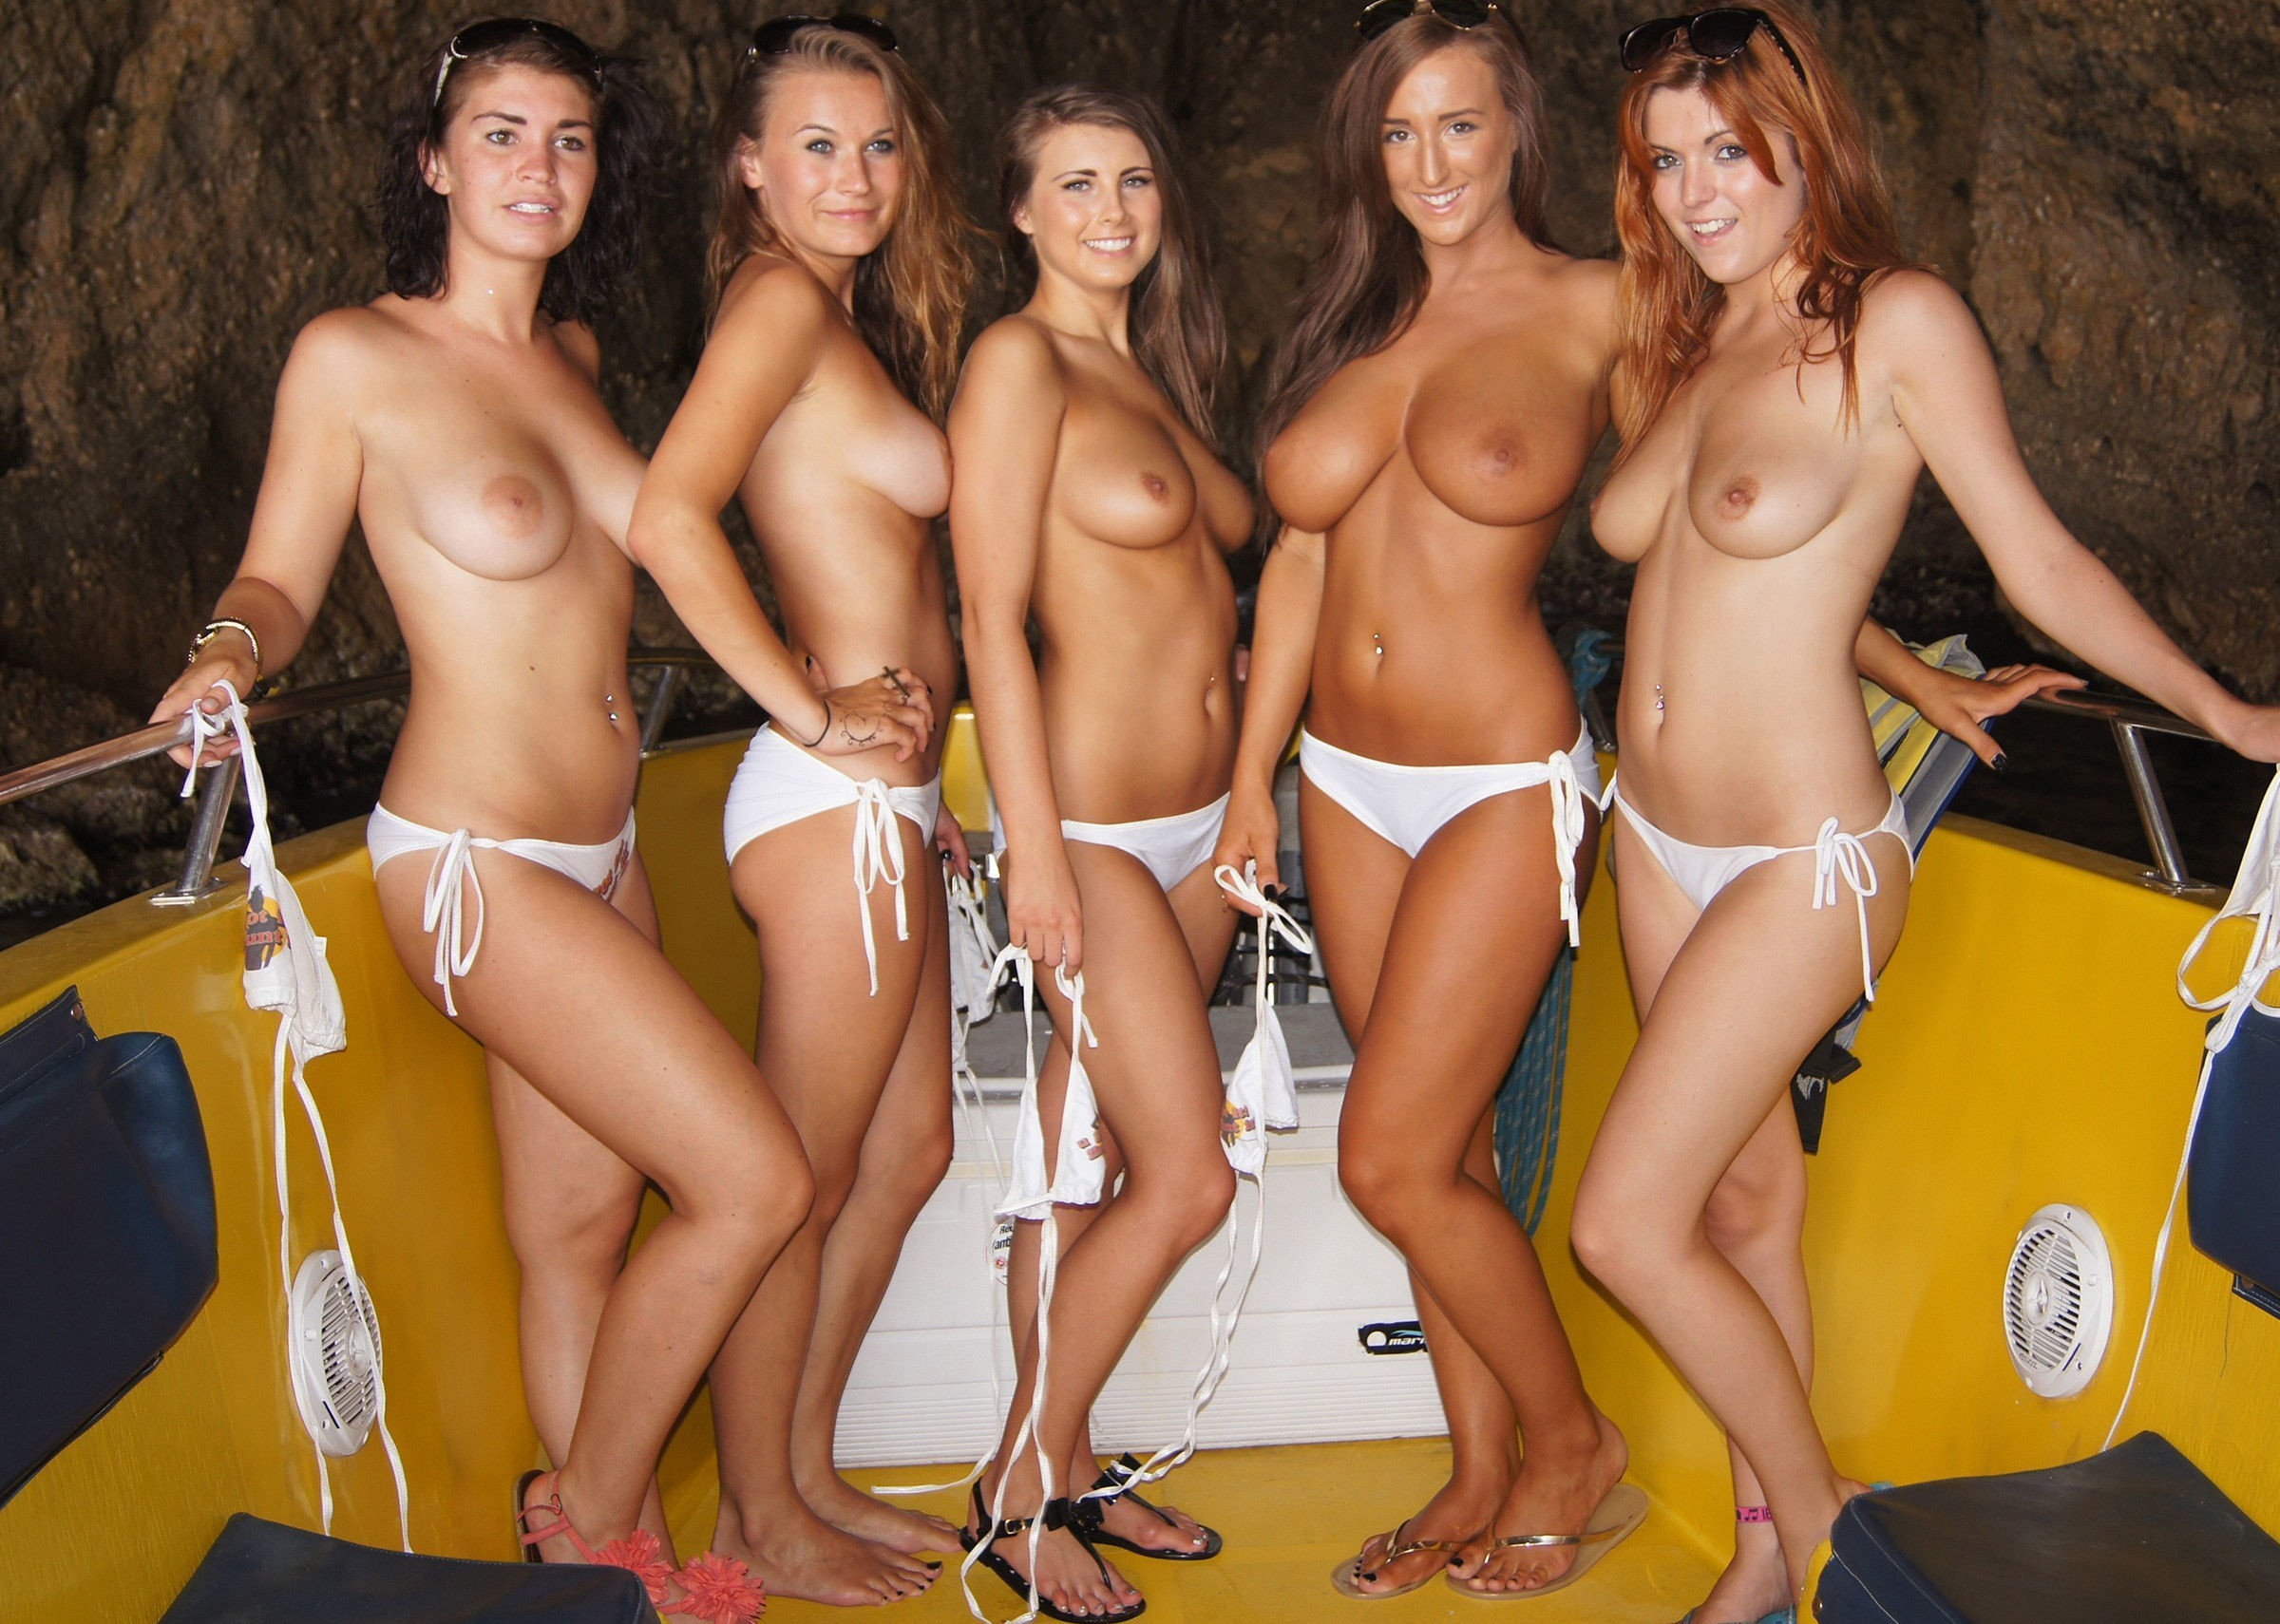 naked-girls-in-group-mix-vol3-58